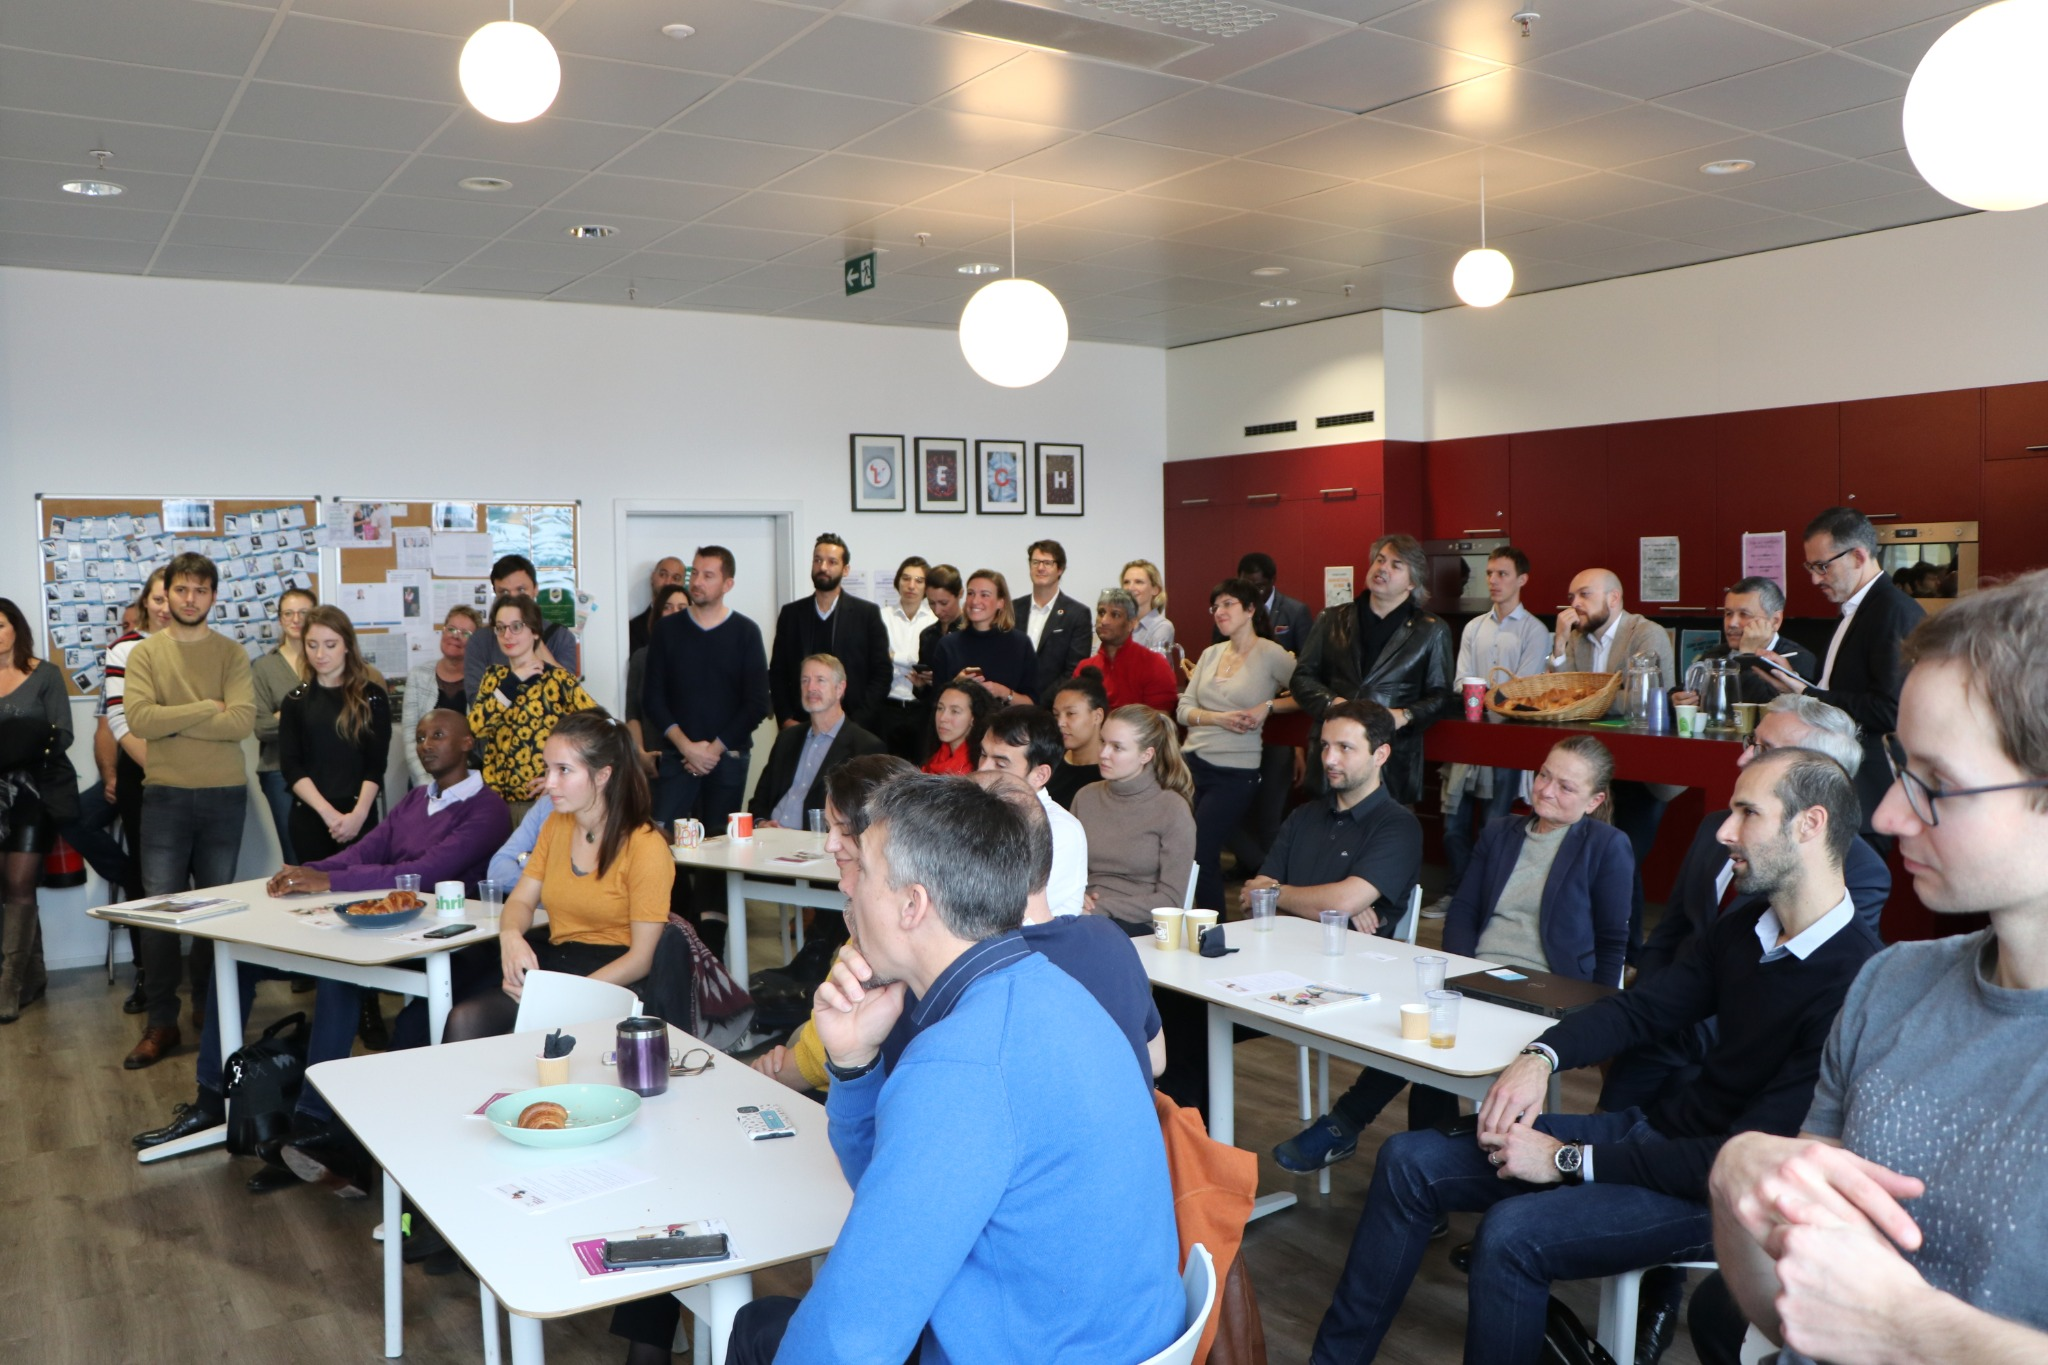 Fongit Open Day- Cafe, Croissants & Incubator Tour